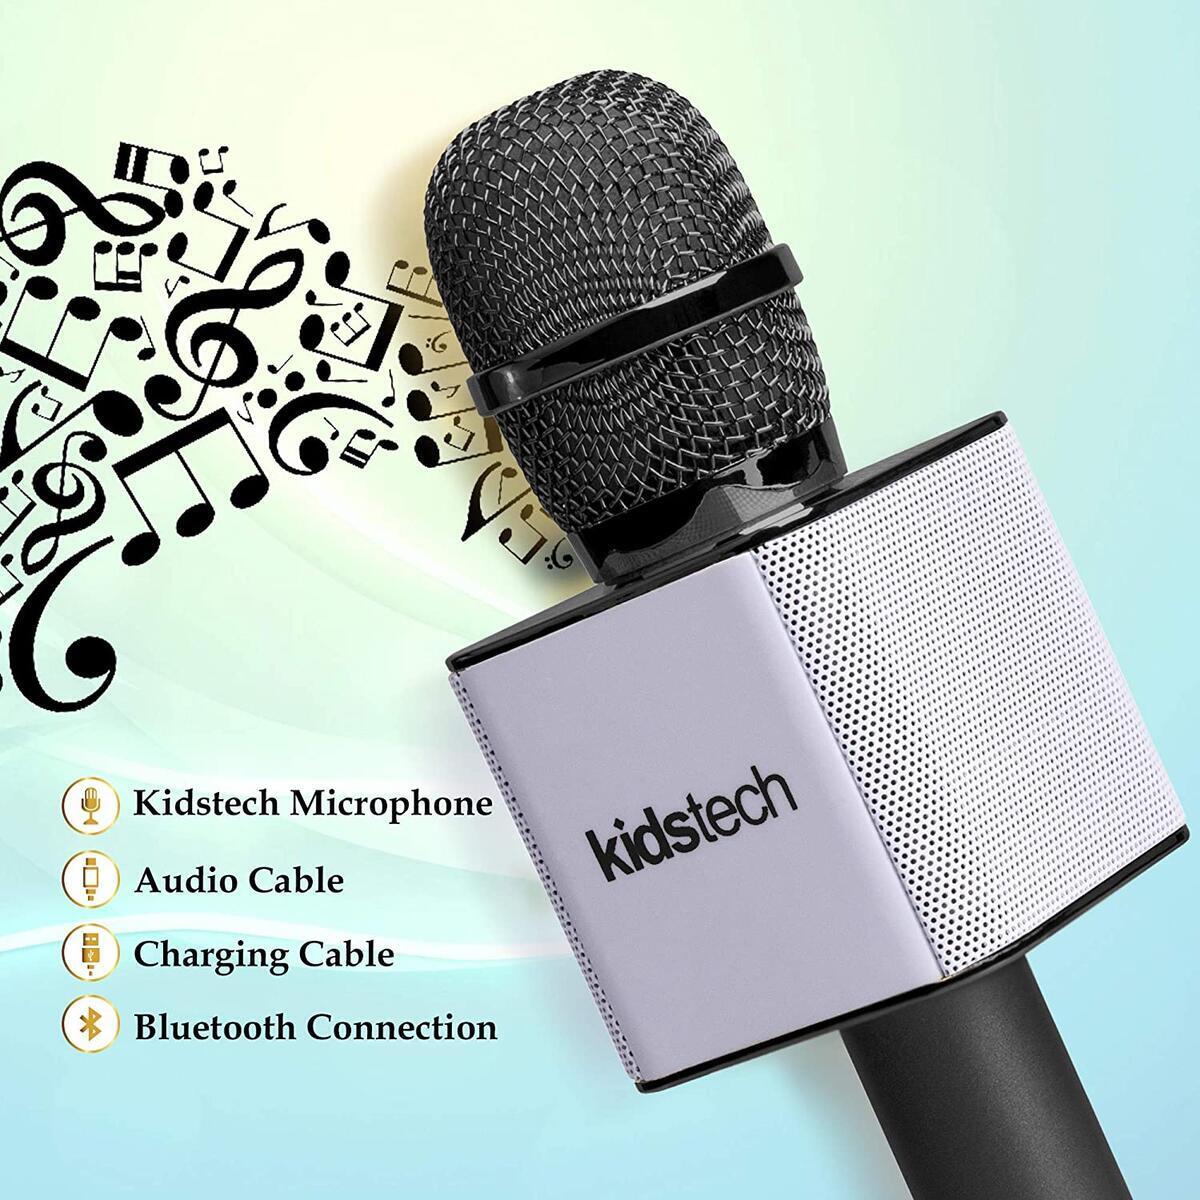 Kidstech Portable Wireless Karaoke Microphone with Bluetooth Speaker Connects to Phone or USB for Awesome Music Playing